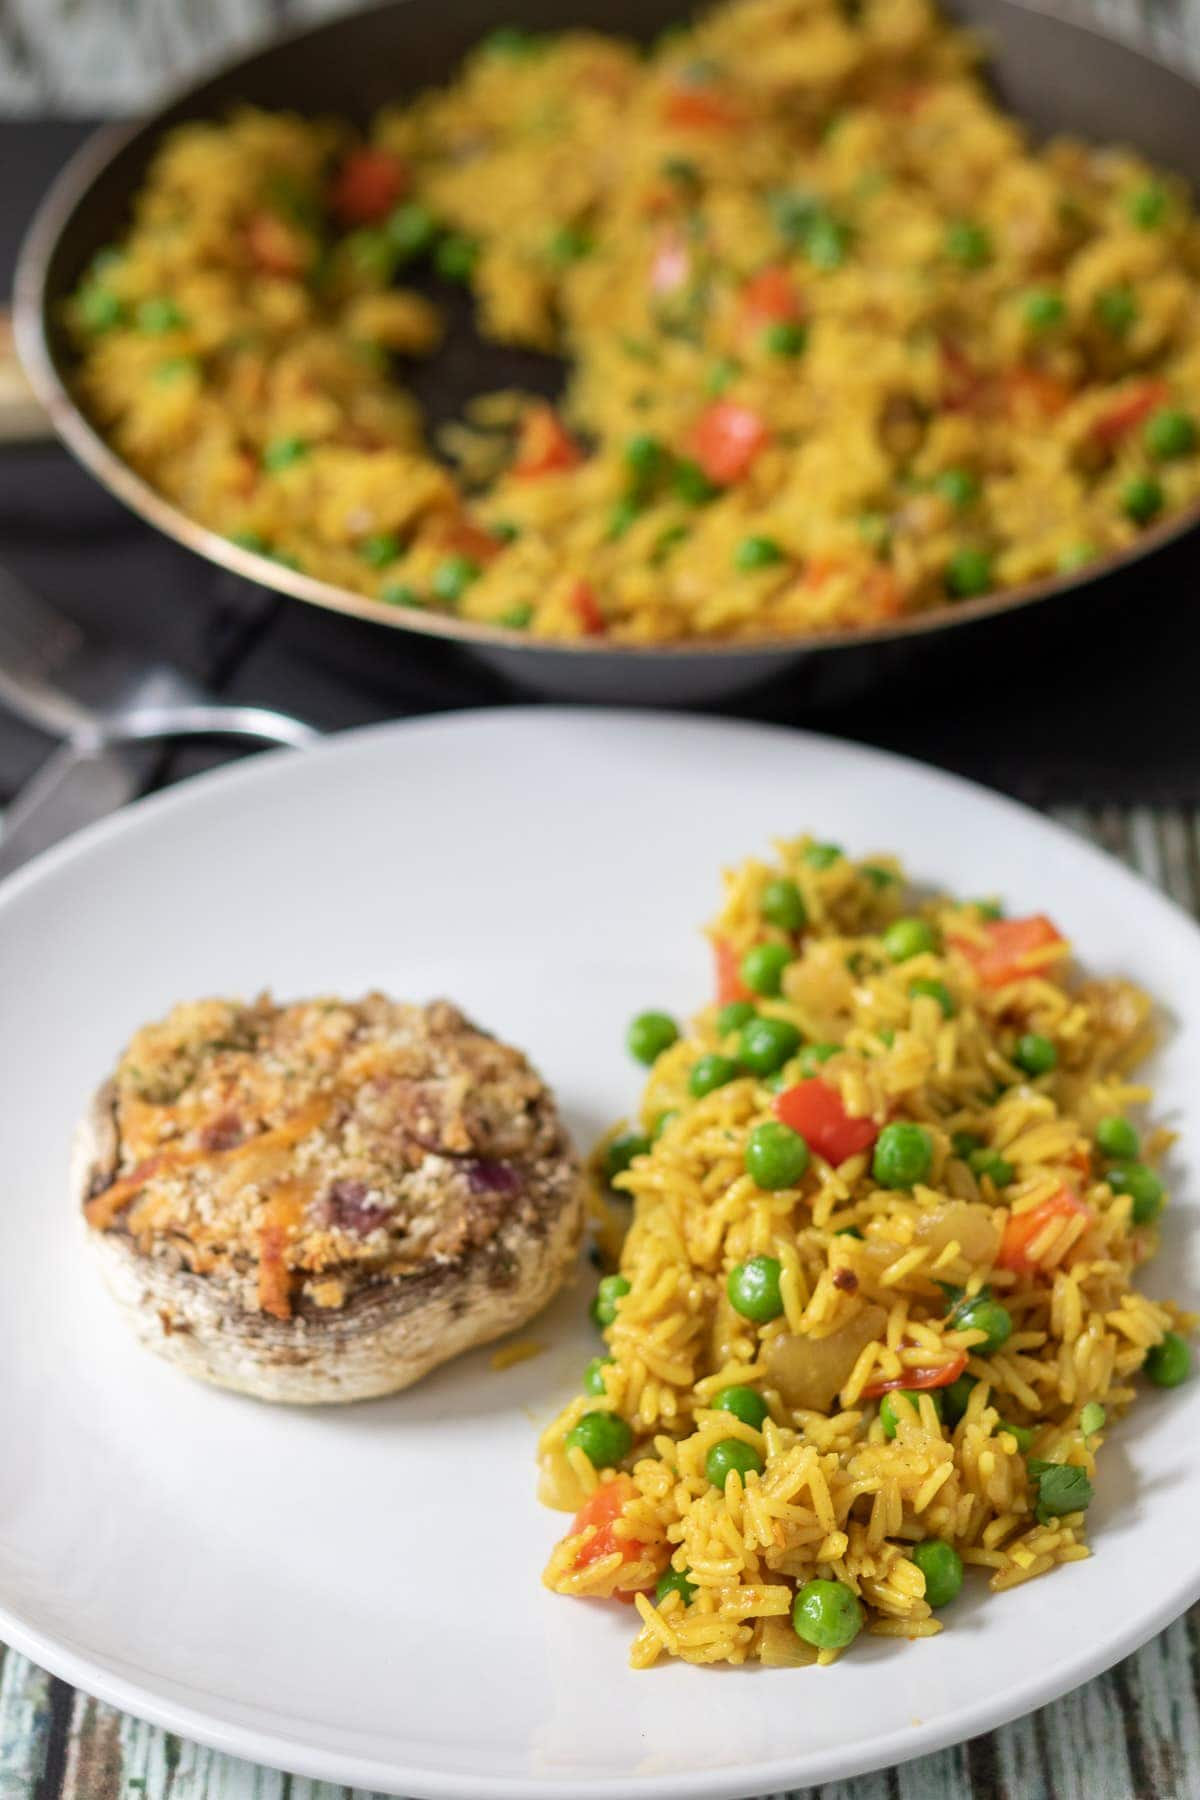 Close up of spicy rice with peas served alongside a stuffed garlic mushroom. Remainer of the rice in a pan in the background.